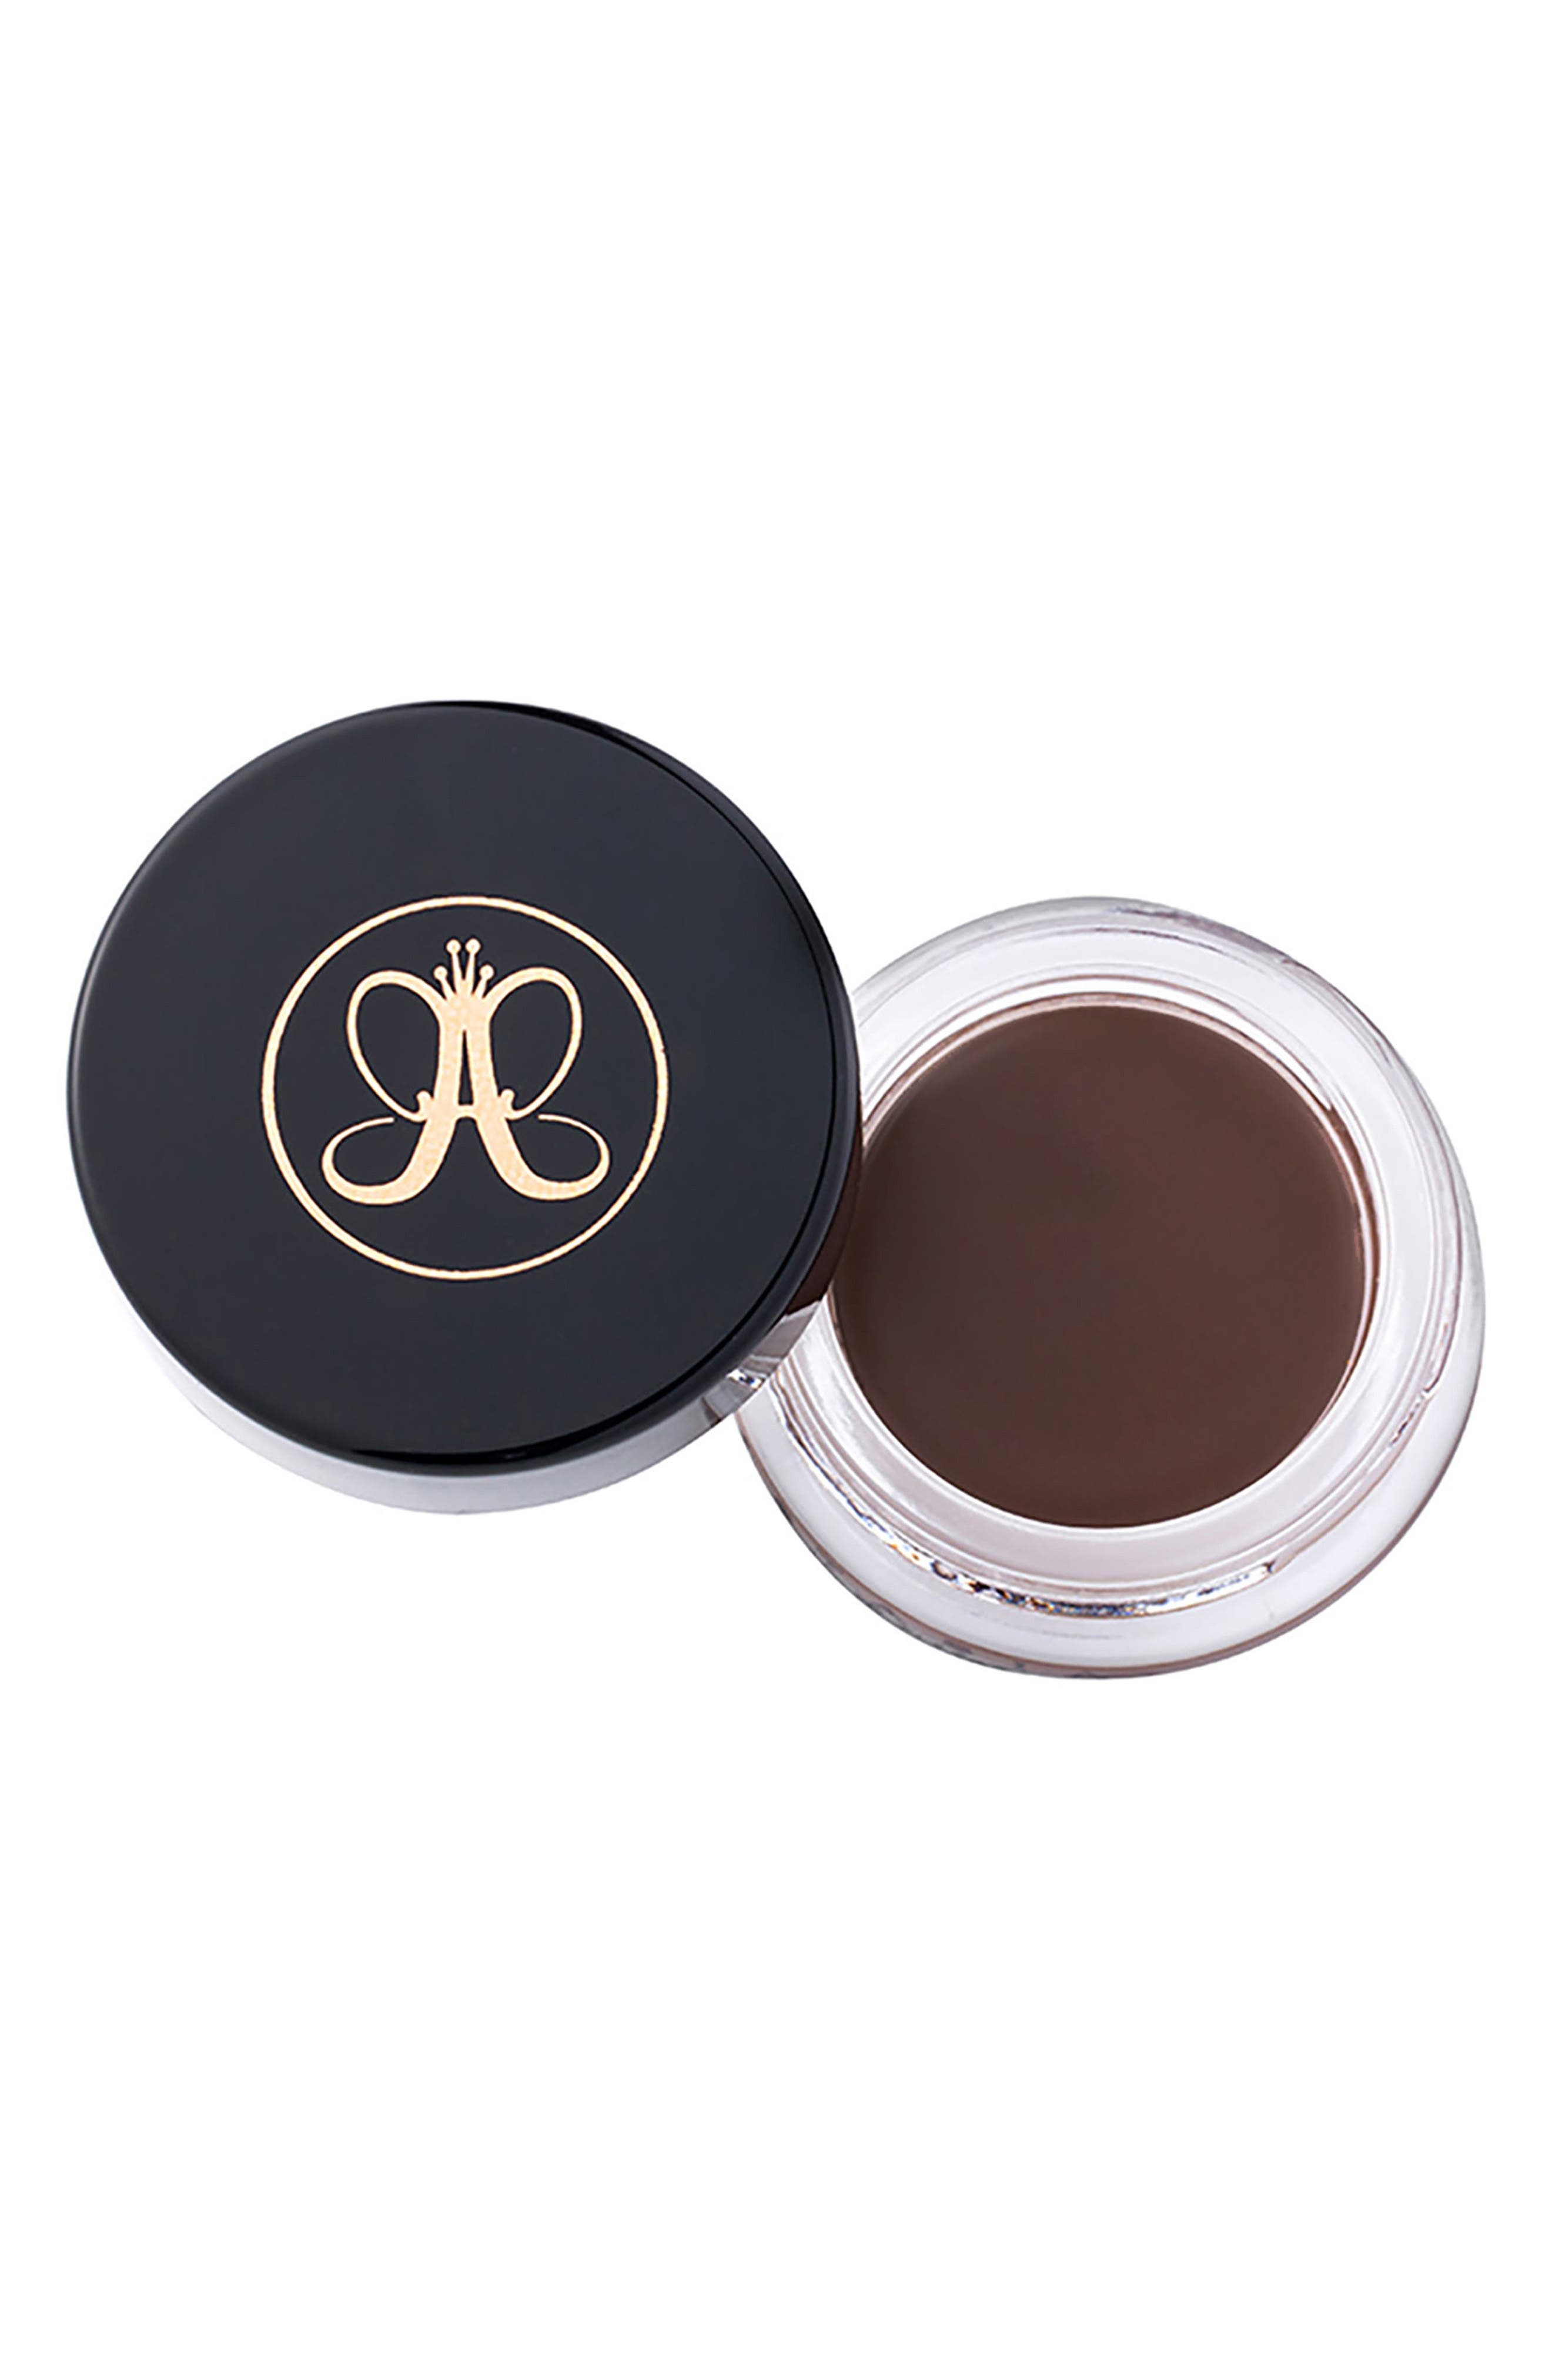 Main Image - Anastasia Beverly Hills Dipbrow Pomade Waterproof Brow Color